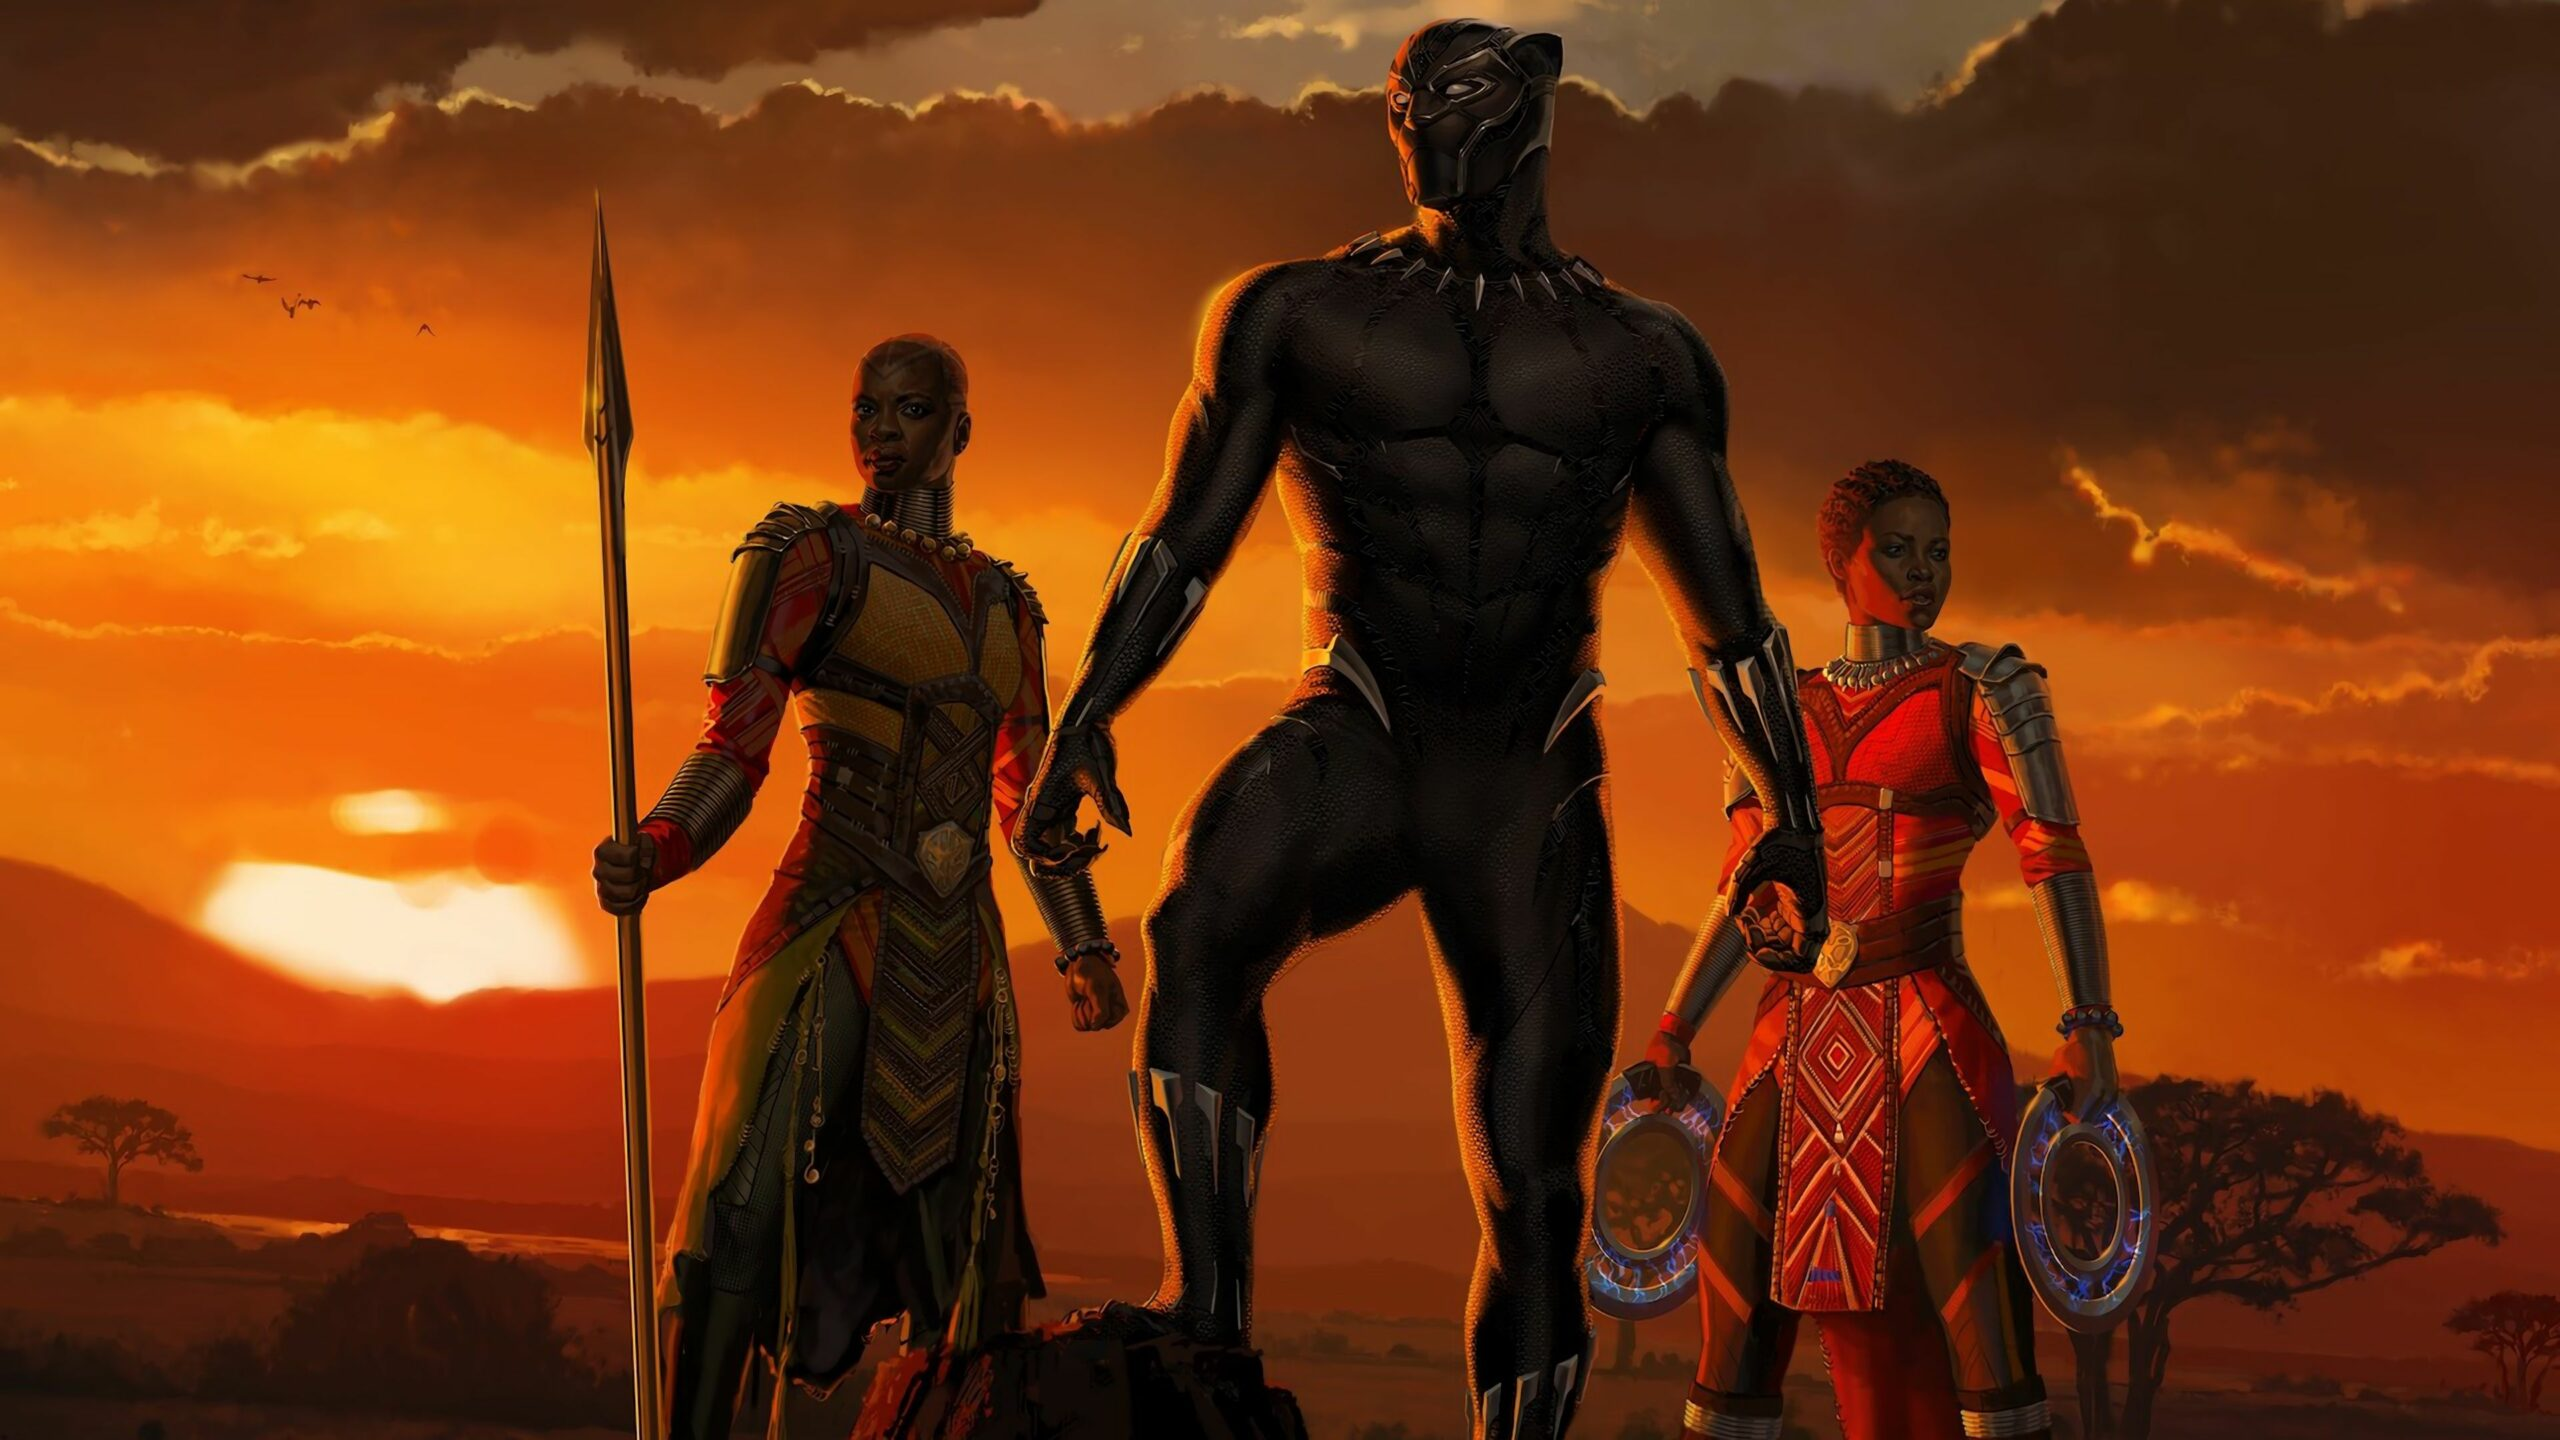 Black Panther Characters